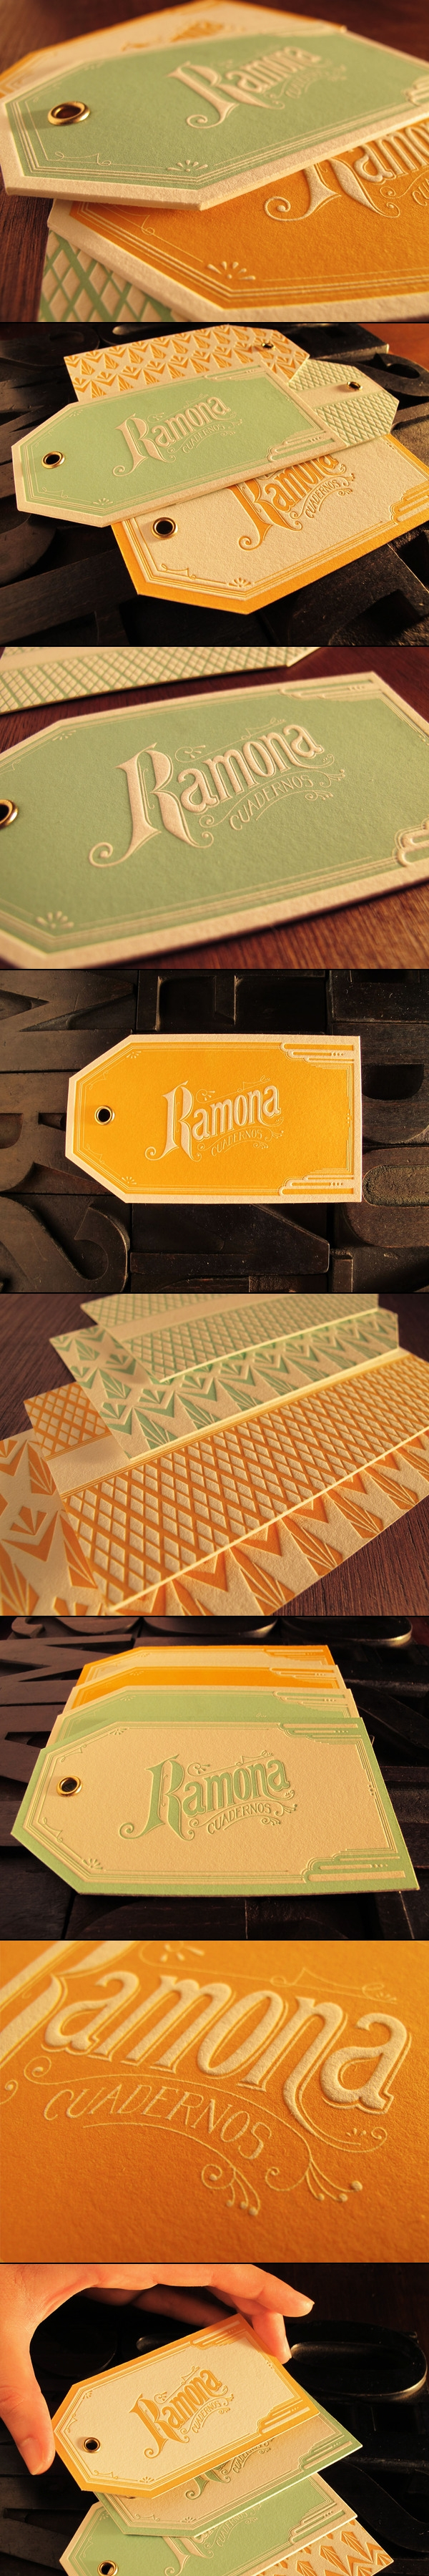 ramona hang tags designed and printed by rocio cogno during a